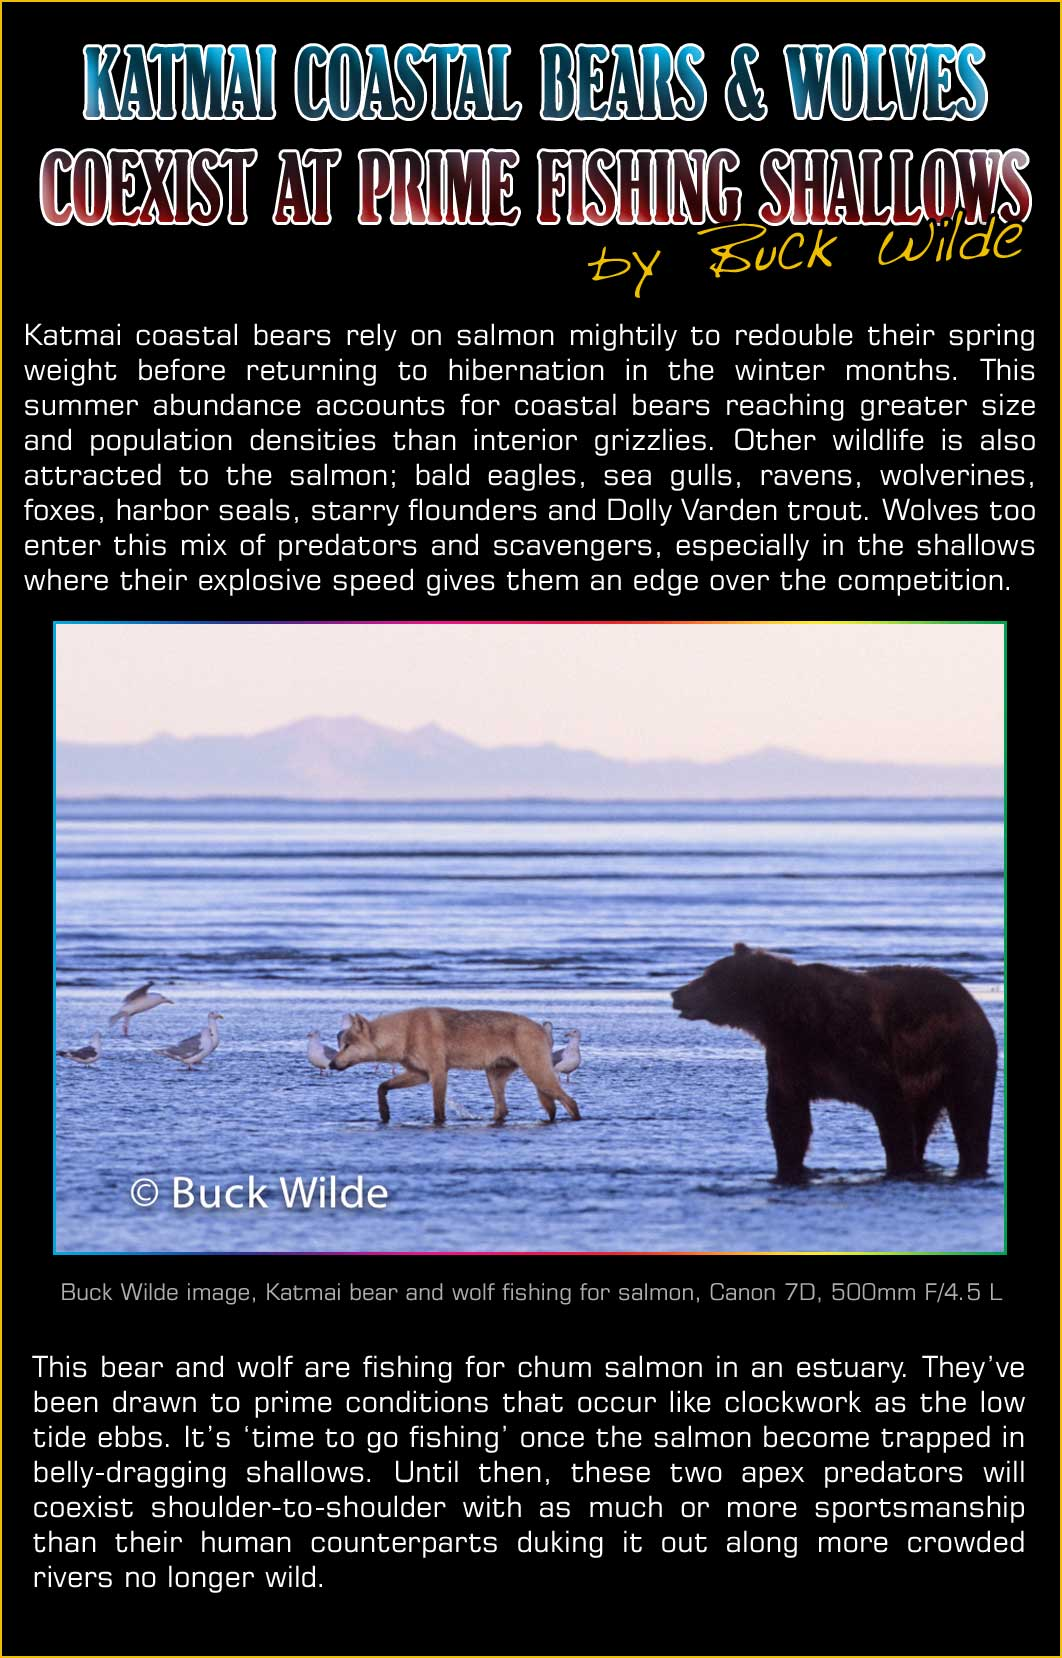 Katmai Coastal Bears and Wolves Coexist at Prime Fishing Shallows